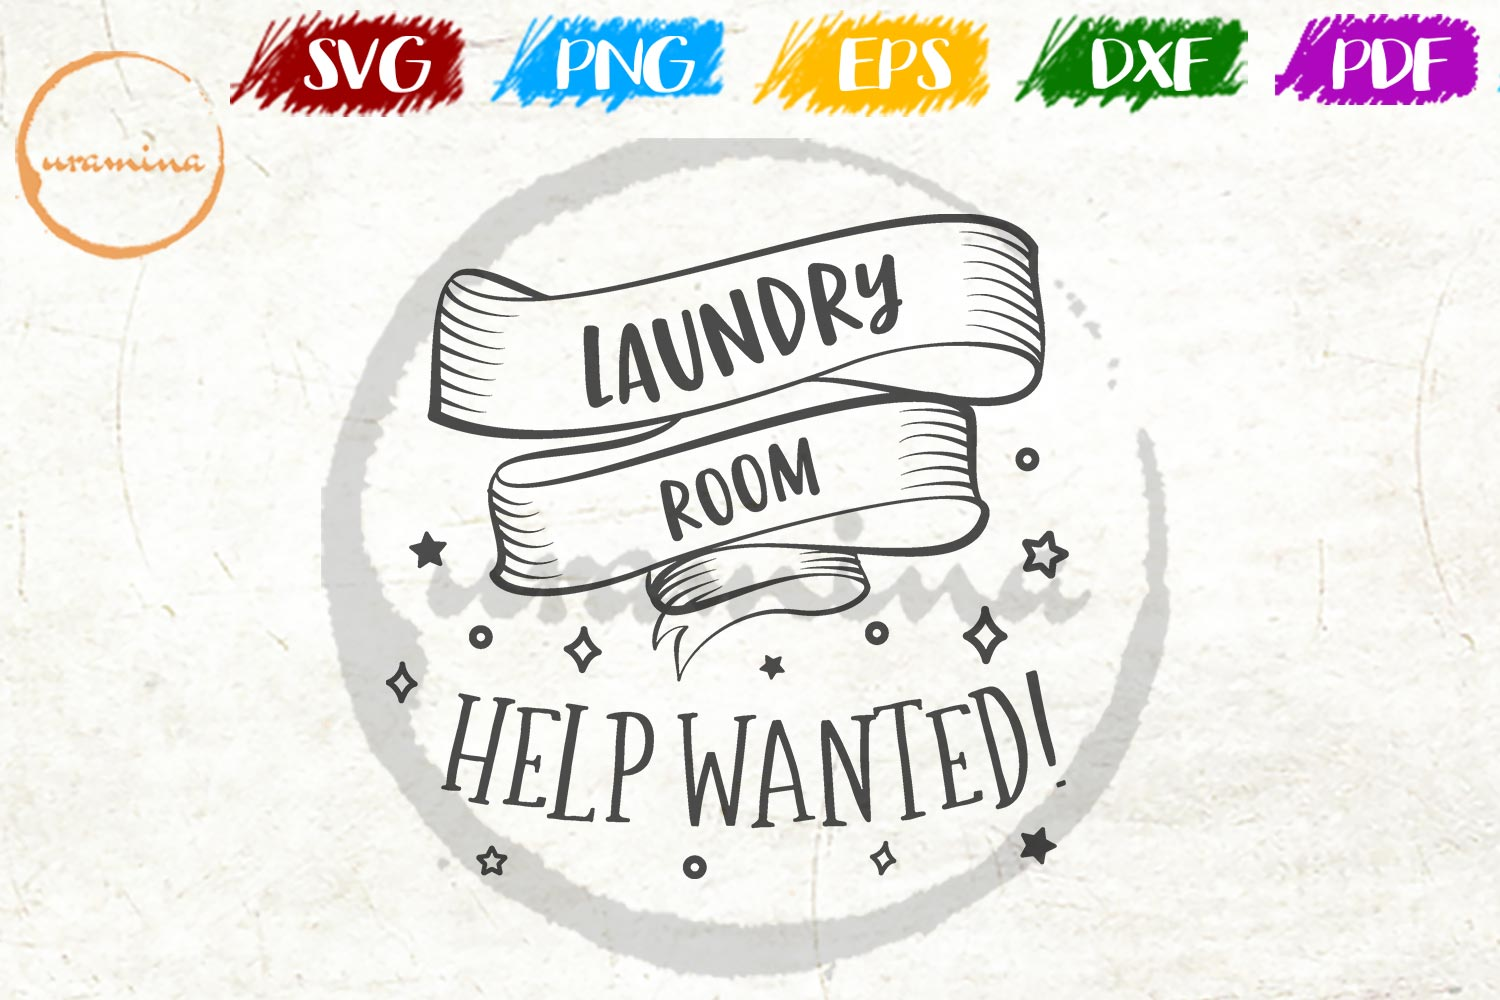 Download Free Laundry Room Help Wanted Graphic By Uramina Creative Fabrica for Cricut Explore, Silhouette and other cutting machines.